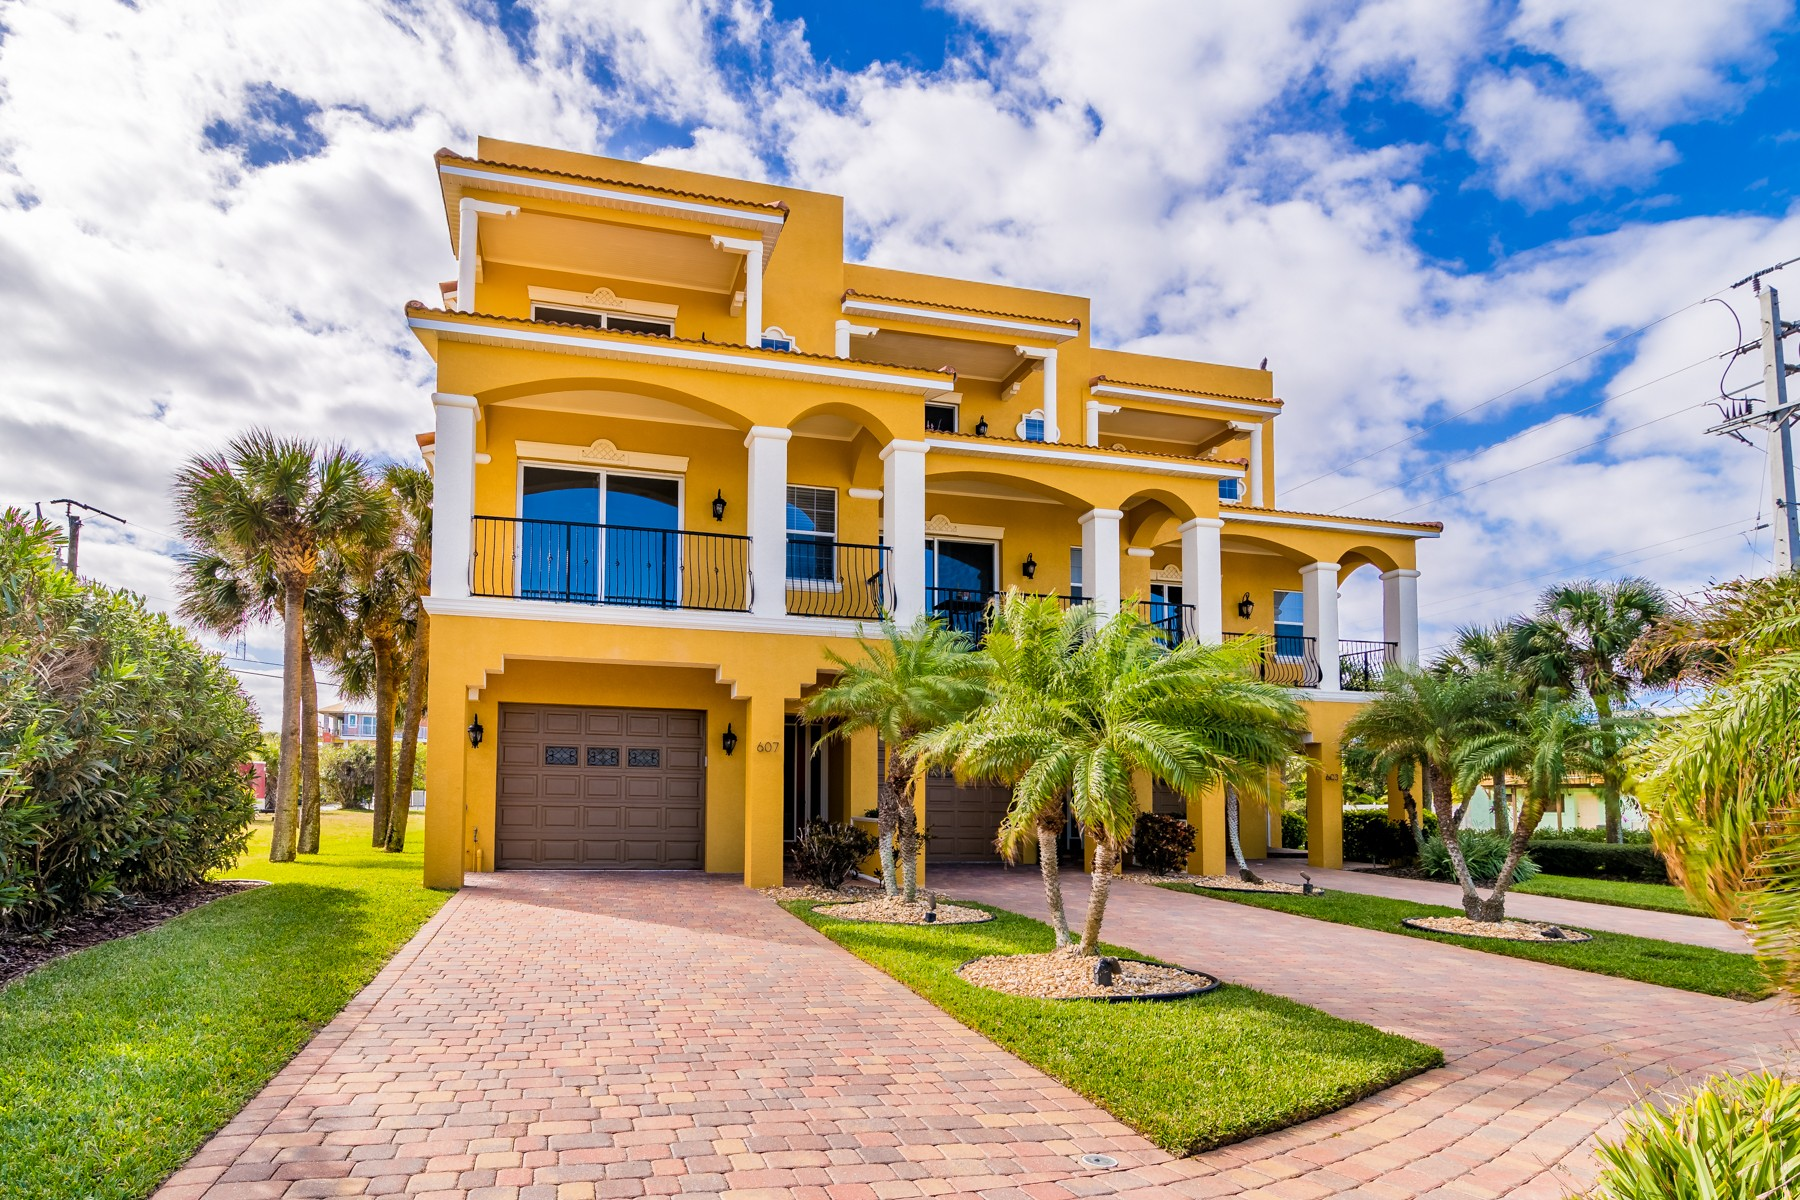 Townhouse for Sale at Beautiful, Luxury Townhouse with a Bright & Open Floor-plan. 607 Washington Avenue Unit 3 Cape Canaveral, Florida 32920 United States